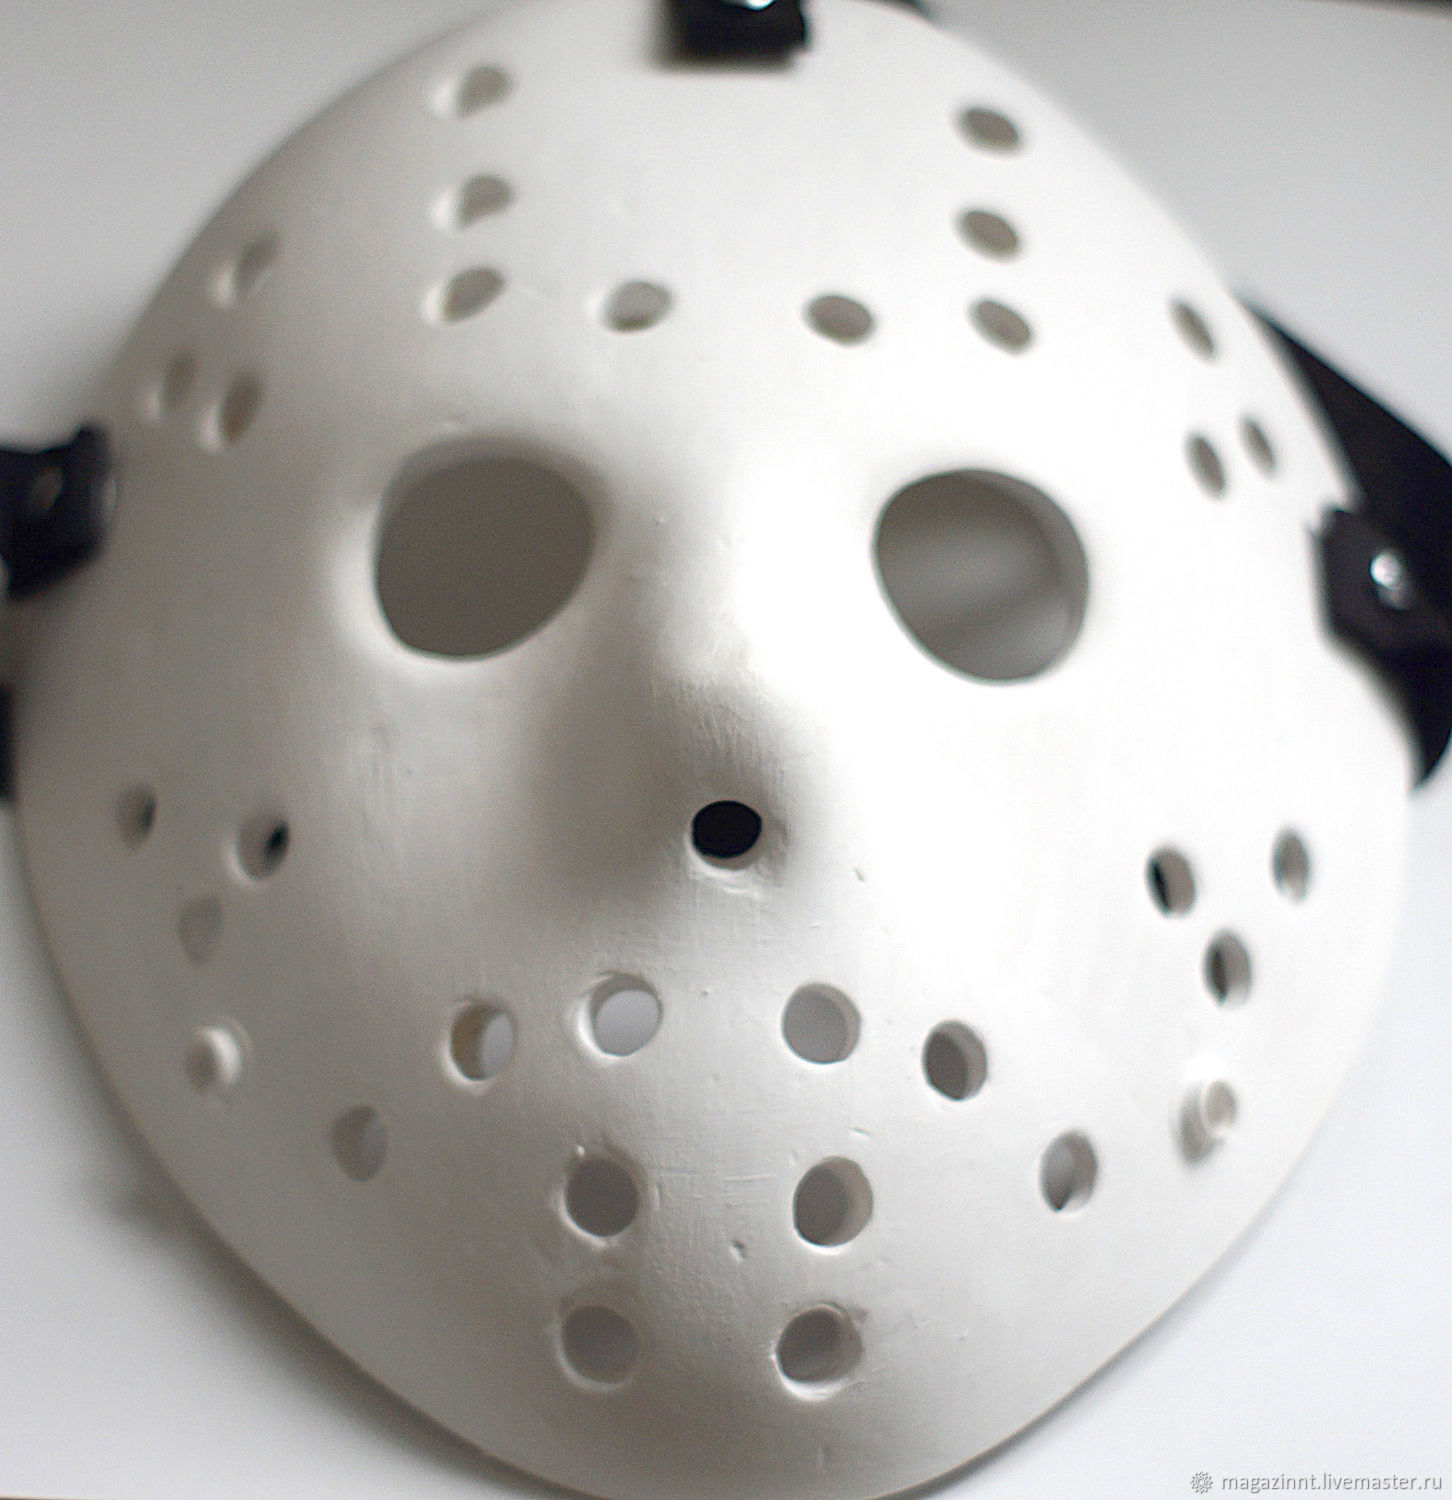 Jason Voorhees Friday the 13th Jason mask White, Mask for role playing, Moscow,  Фото №1